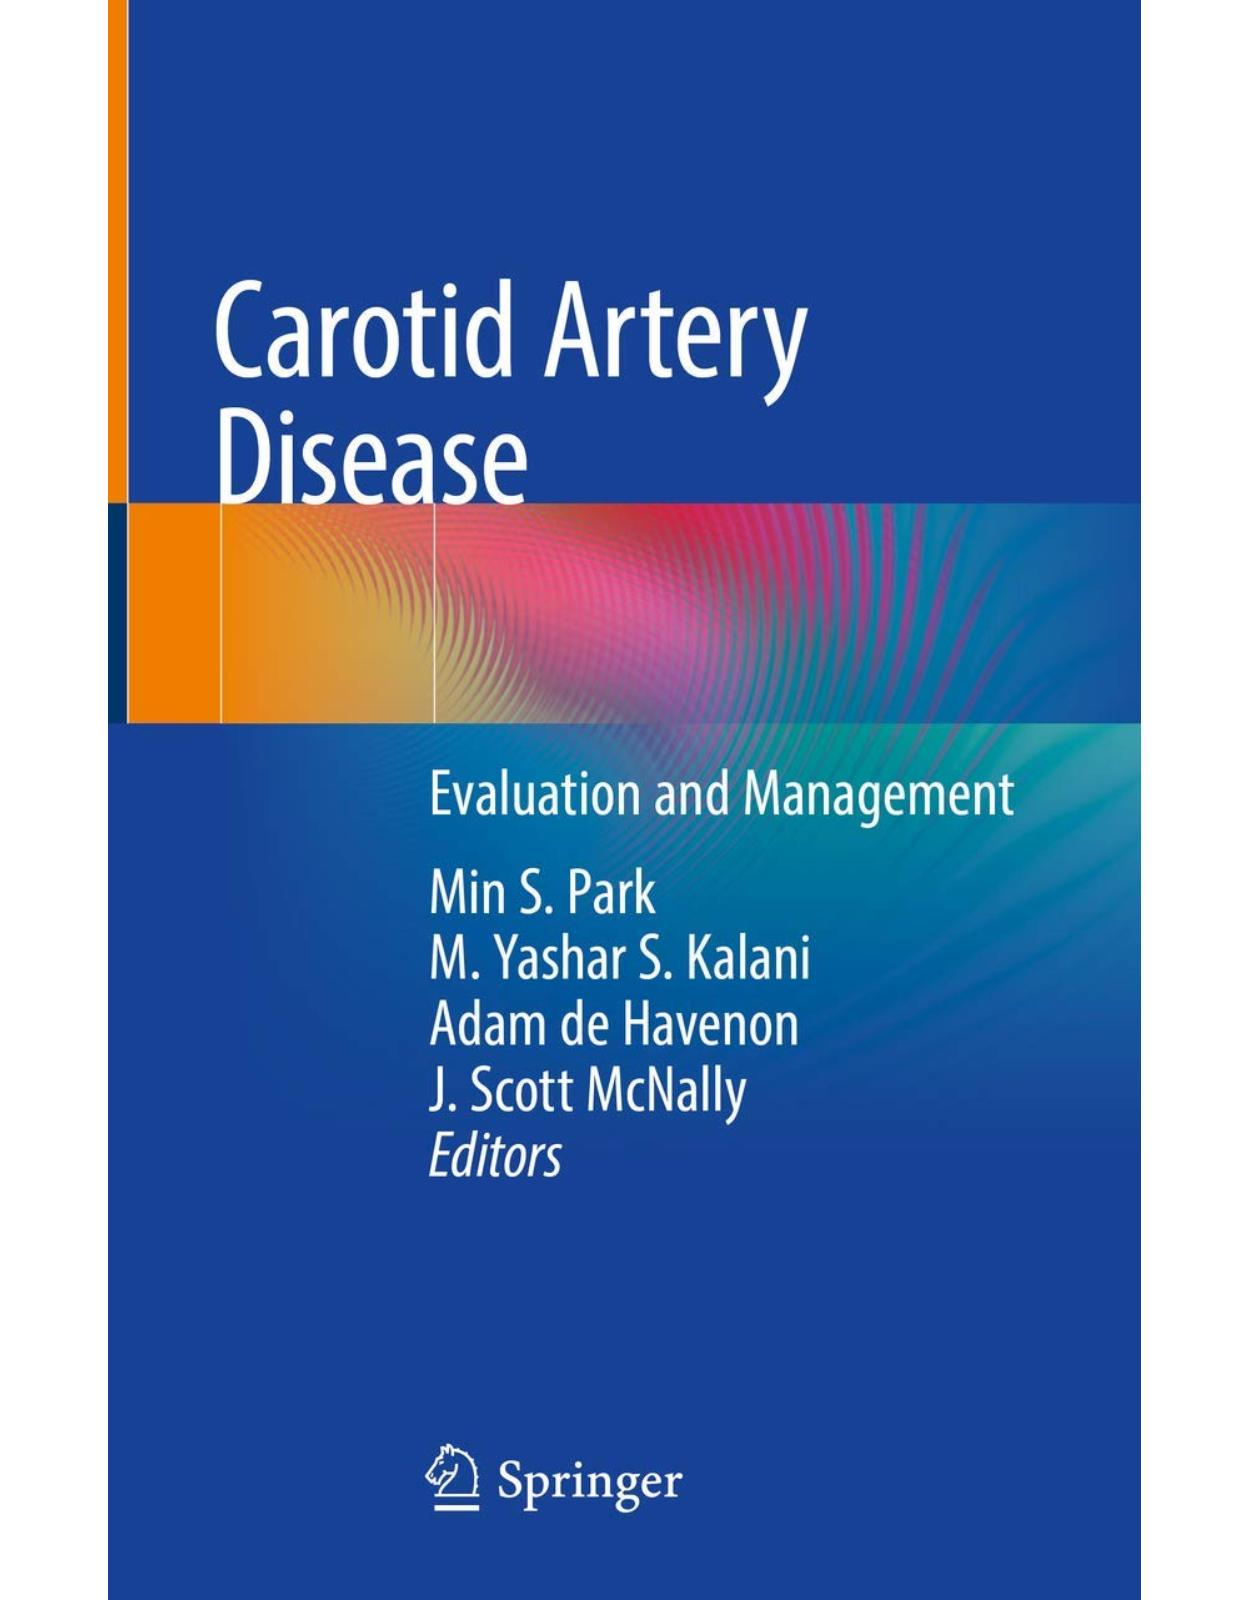 Carotid Artery Disease: Evaluation and Management